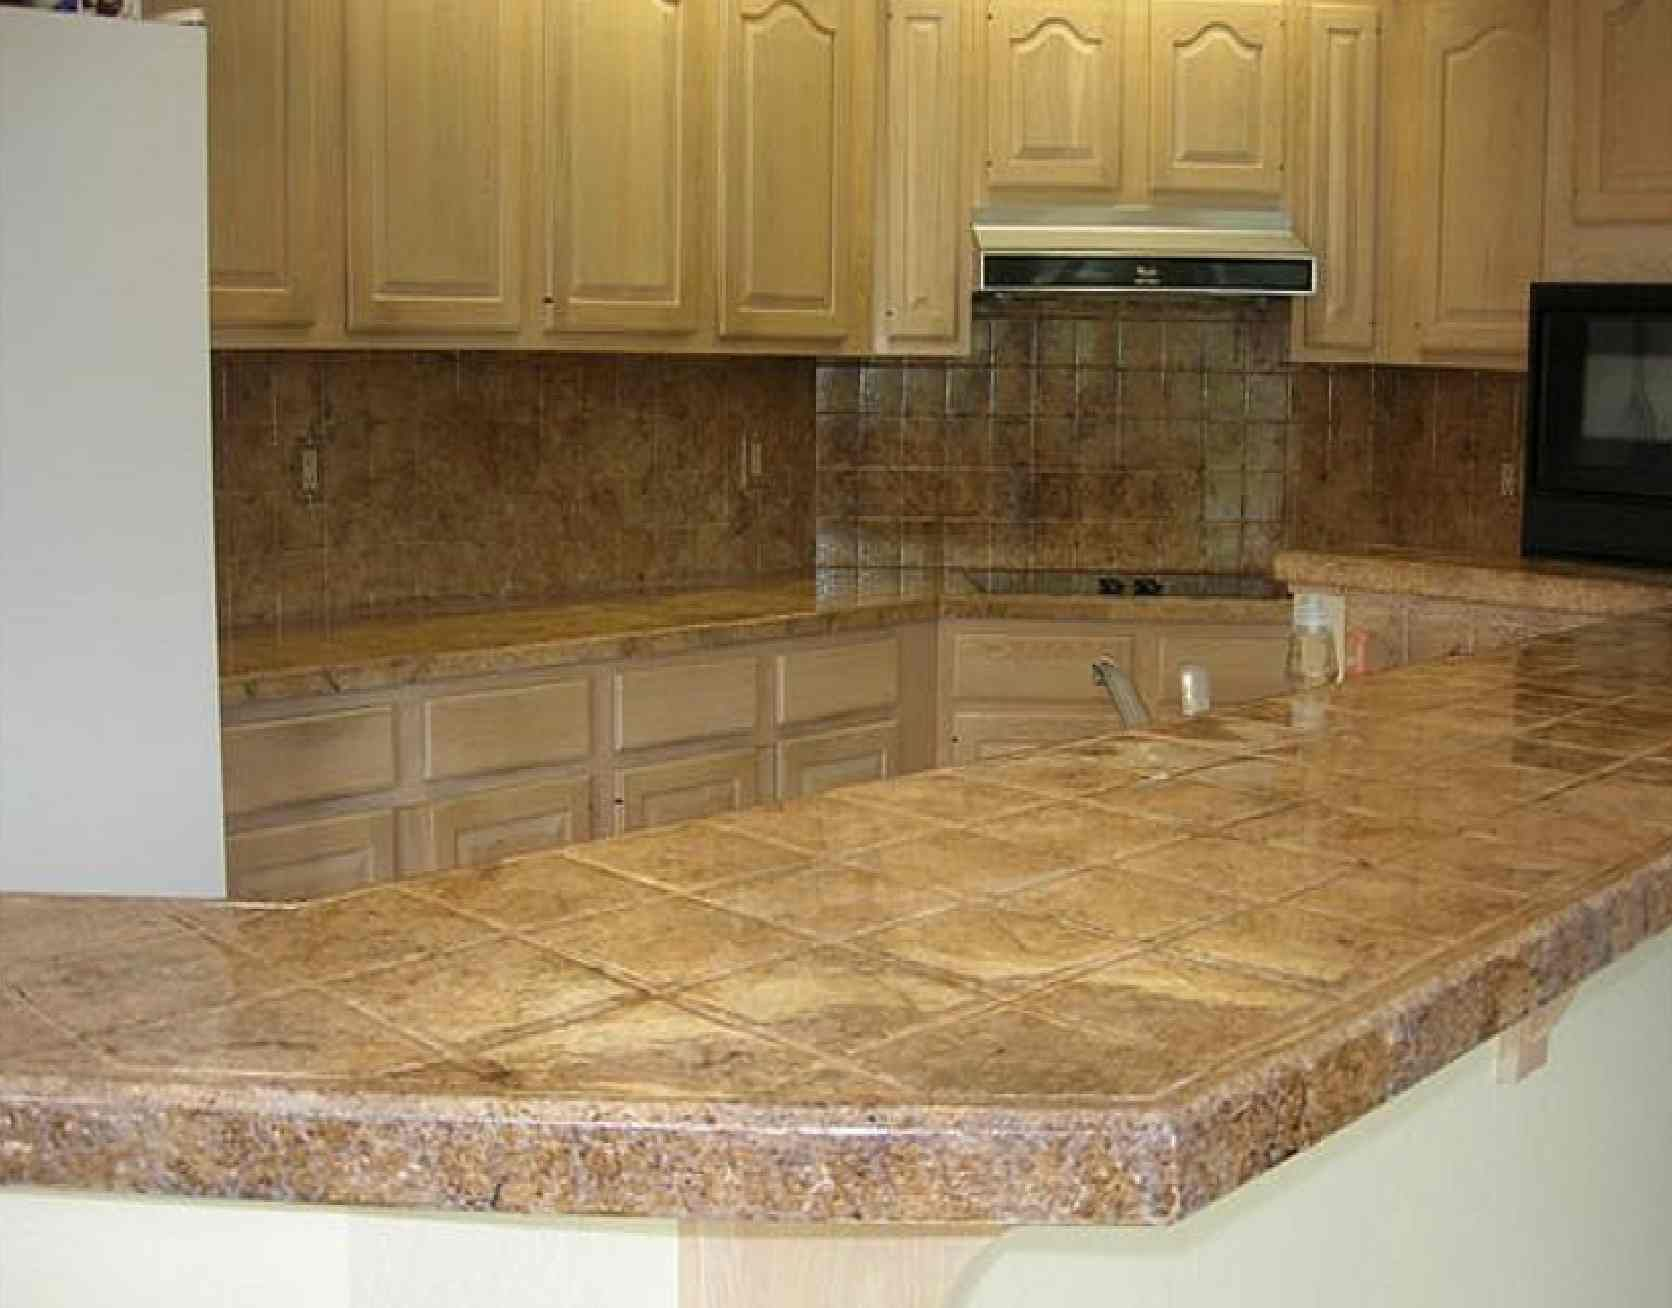 Of Kitchen Tiles Porcelain Tile Backsplash Gallery Just Finished Up A Ceramic